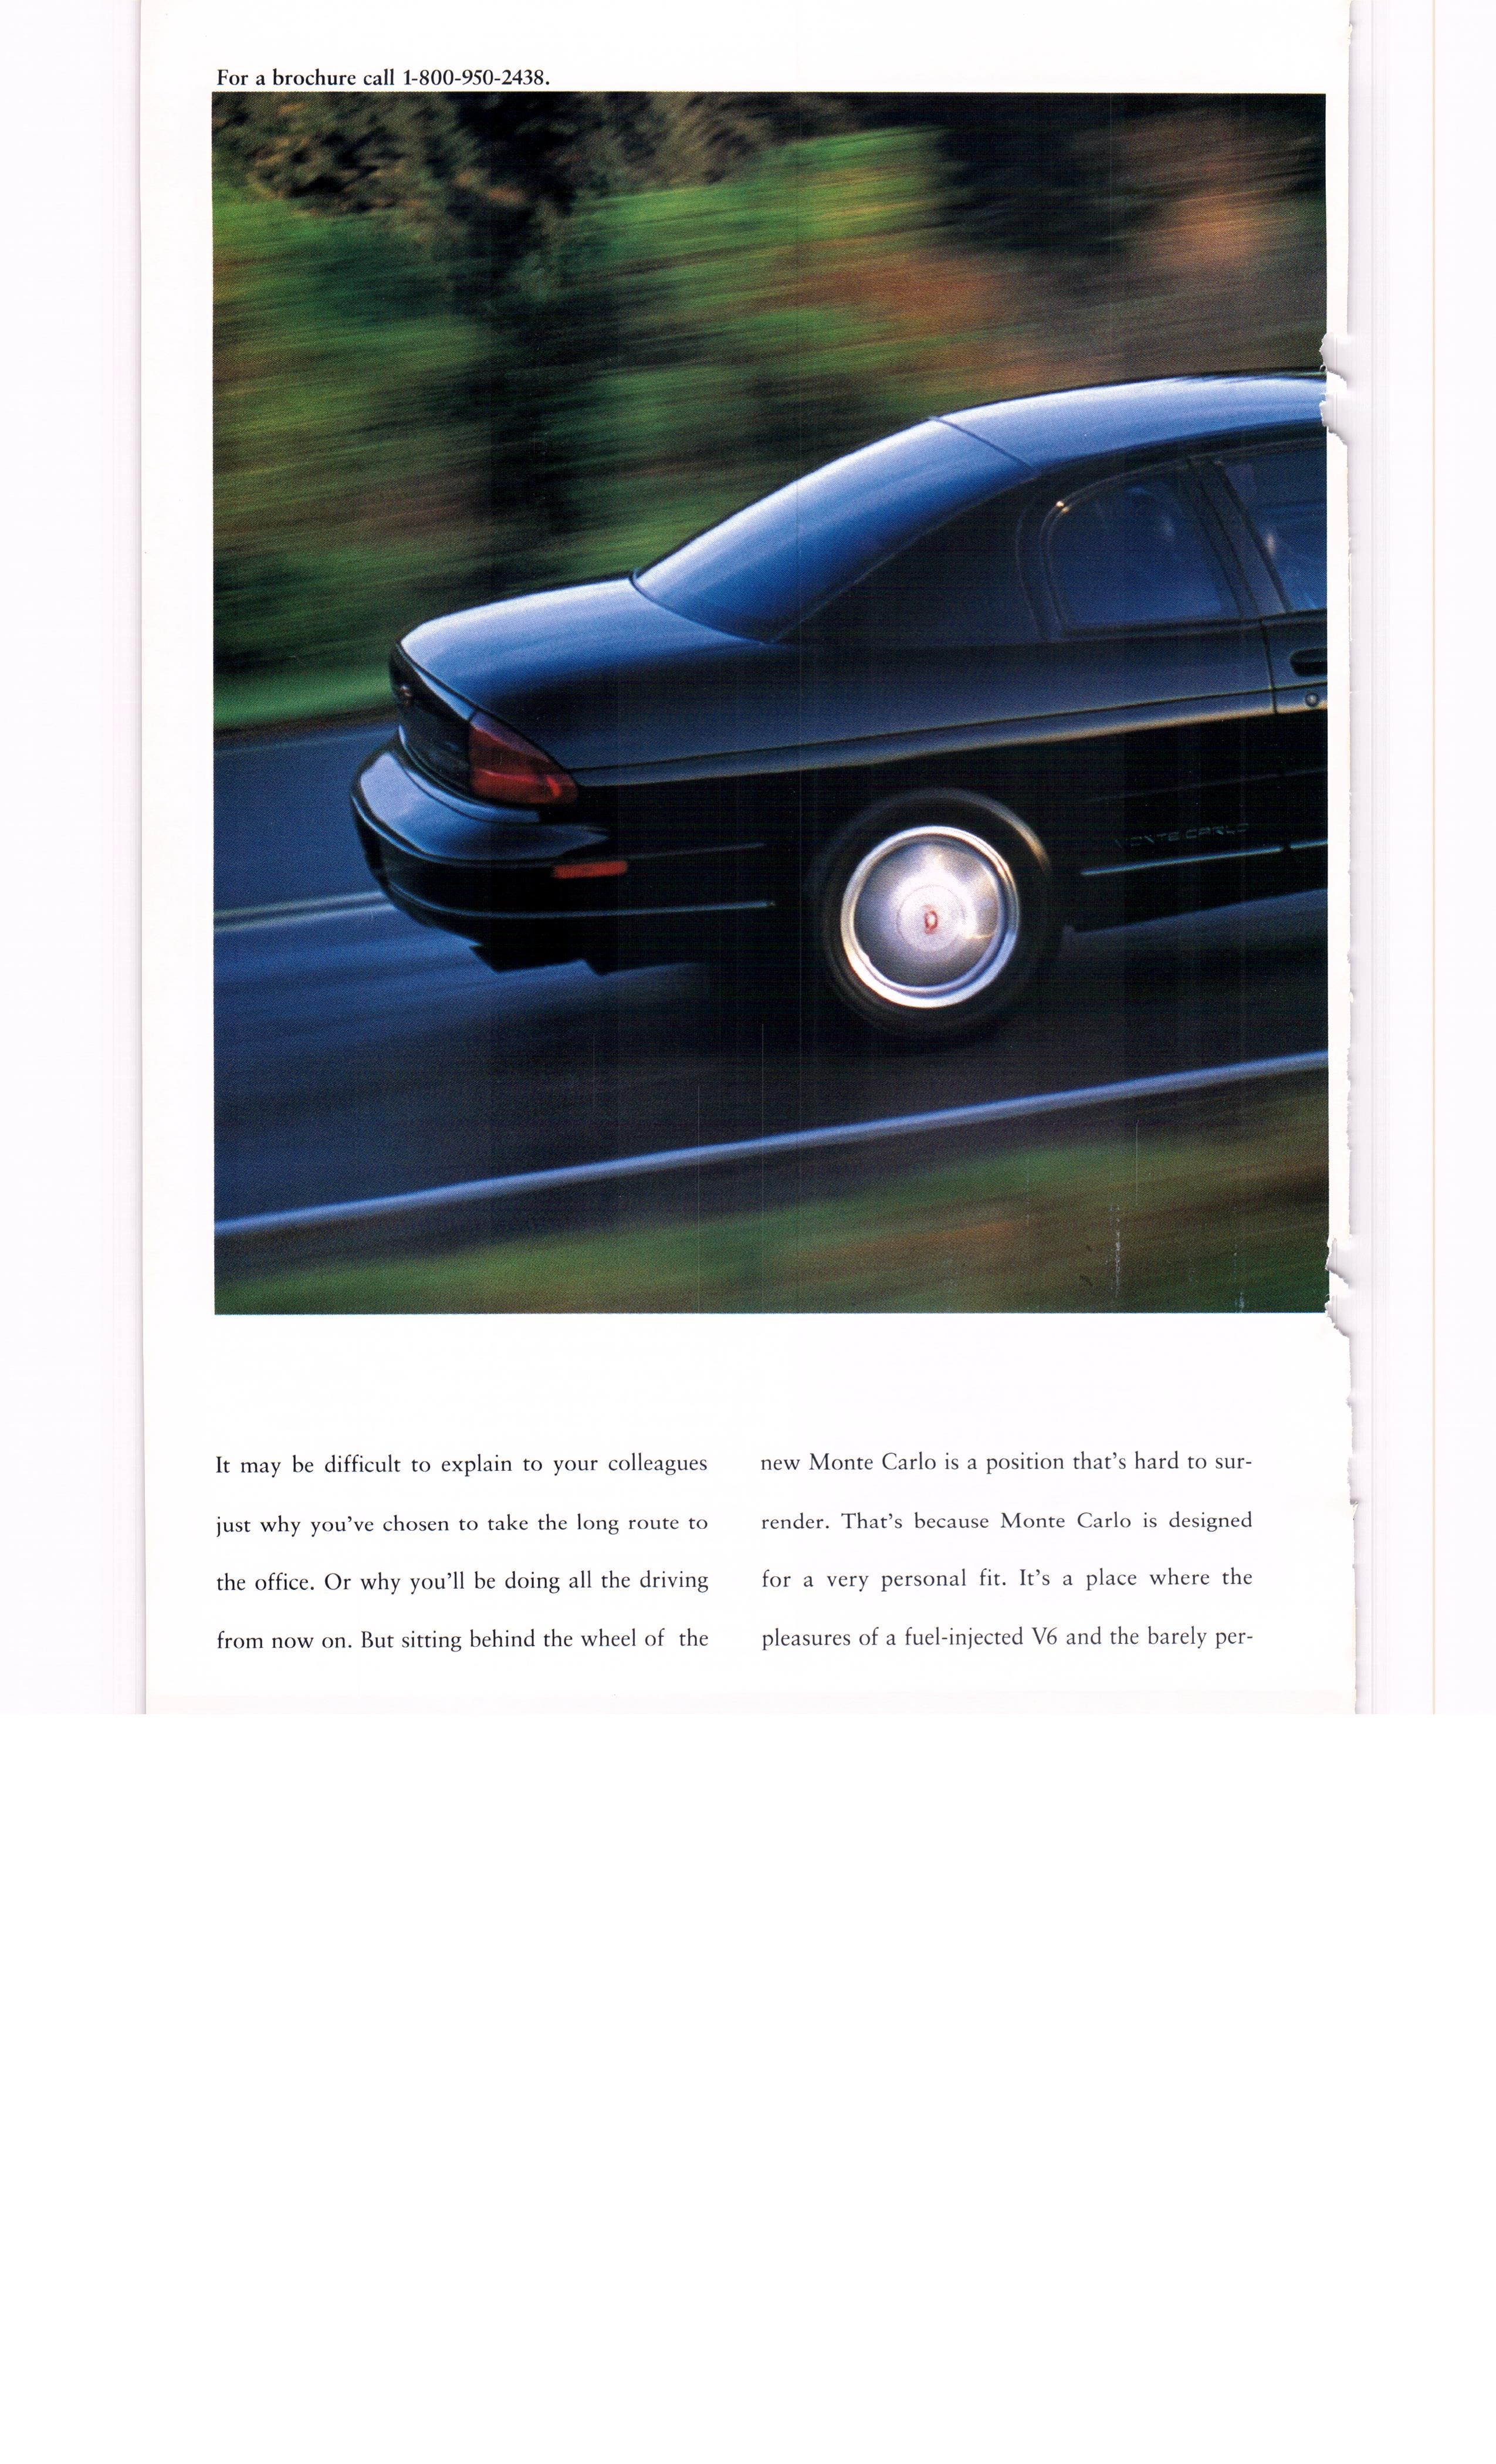 1994 chevy monte carlo ad2 national geographic september 1994 [ 2550 x 4200 Pixel ]